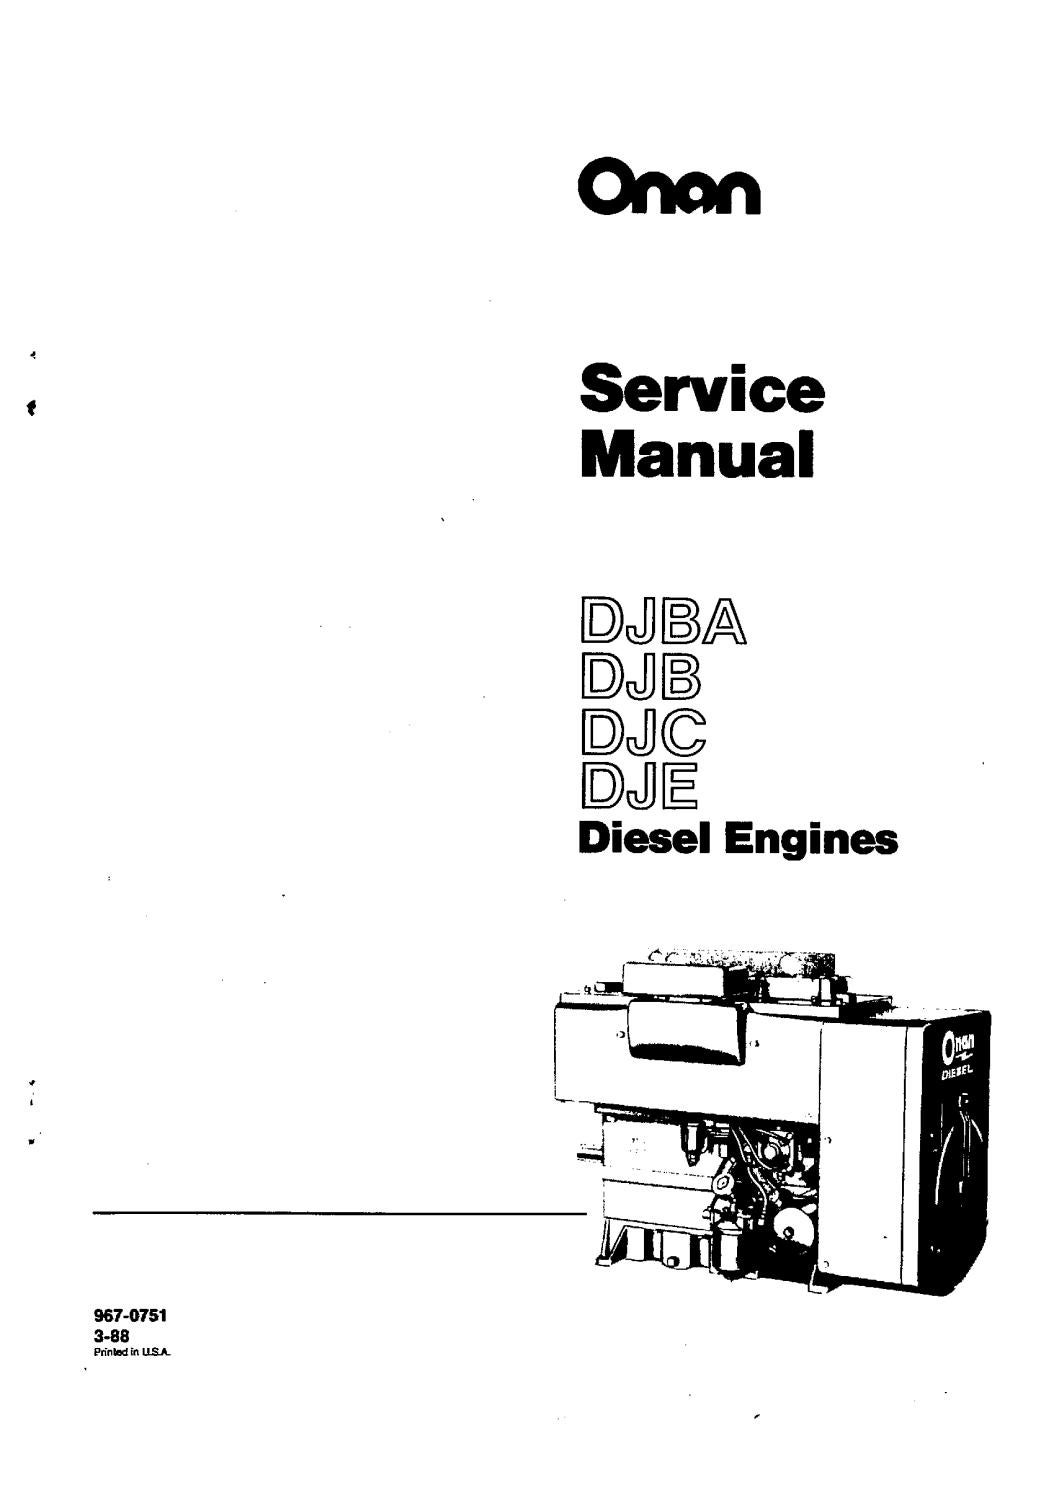 Cummins Onan DJB Diesel Engine Service Repair Manual by